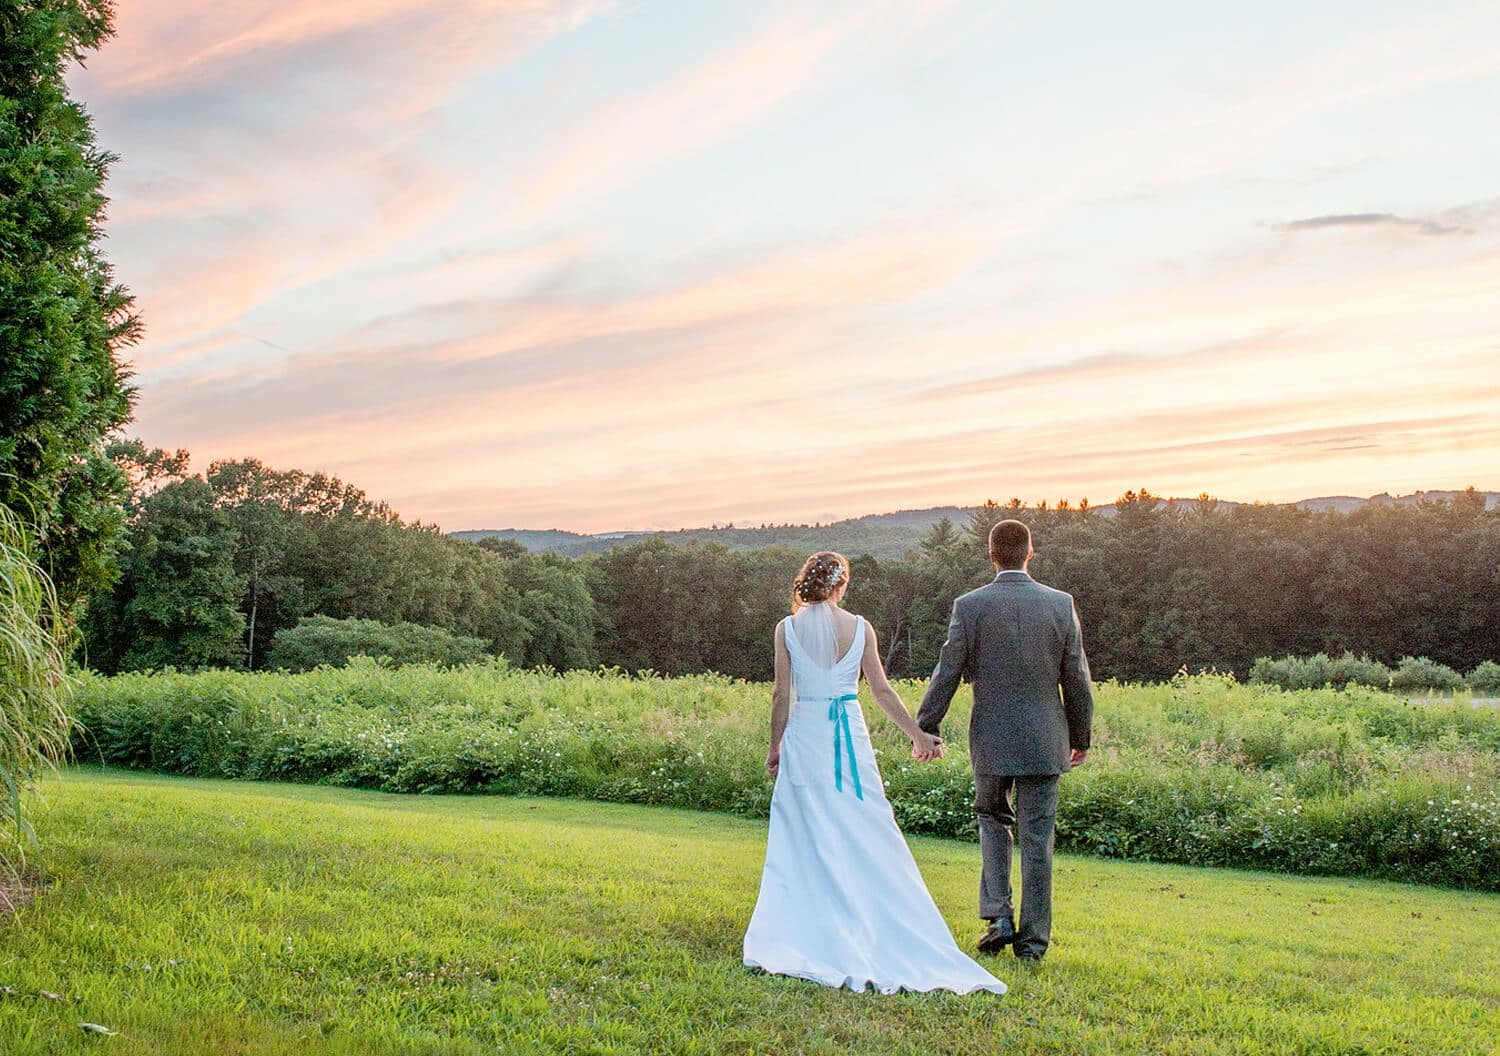 bride and groom in country with beautiful pink sky